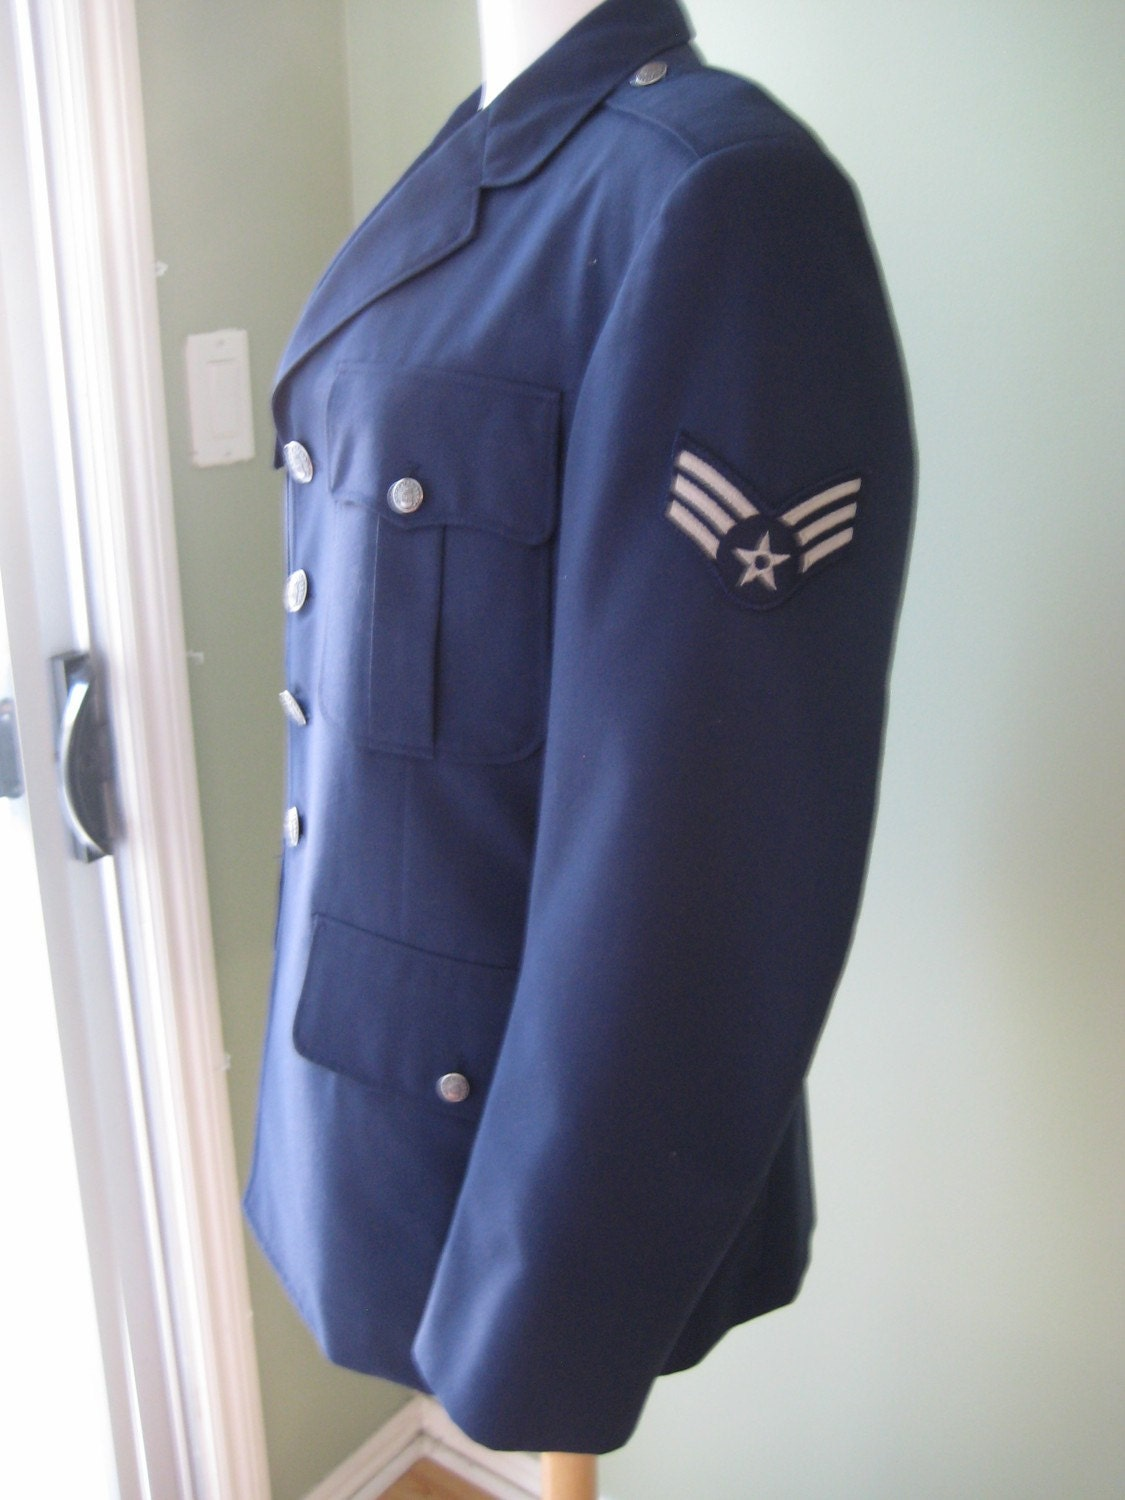 Vintage air force uniform was great